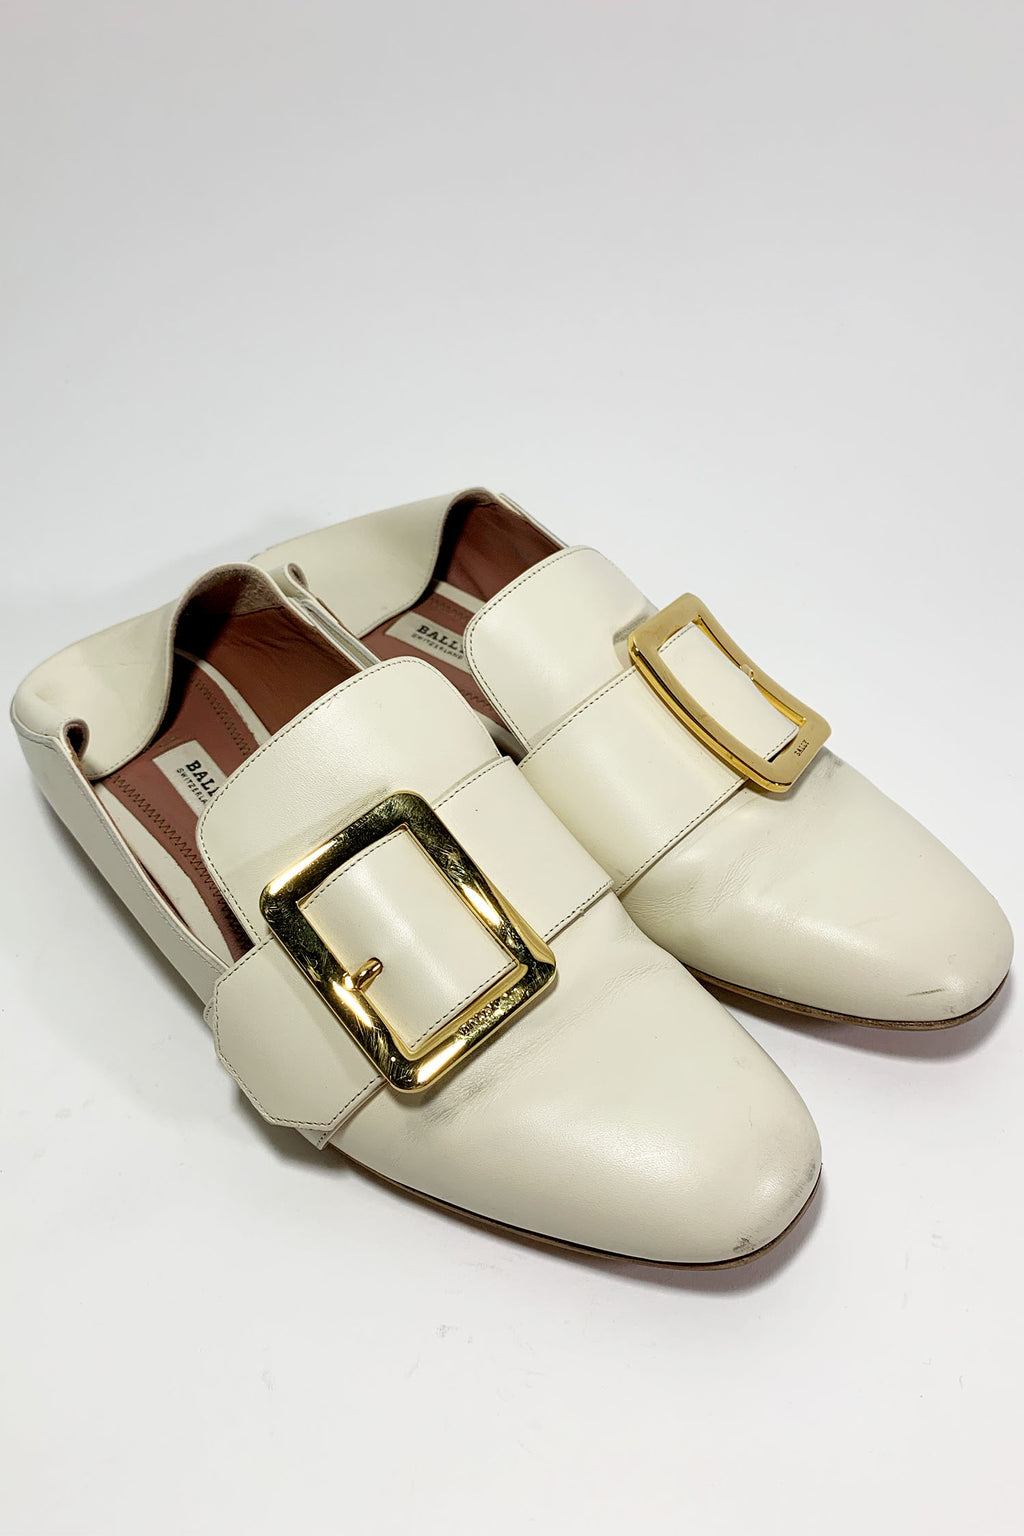 Bally 'Janelle' White Loafer sz 38.5